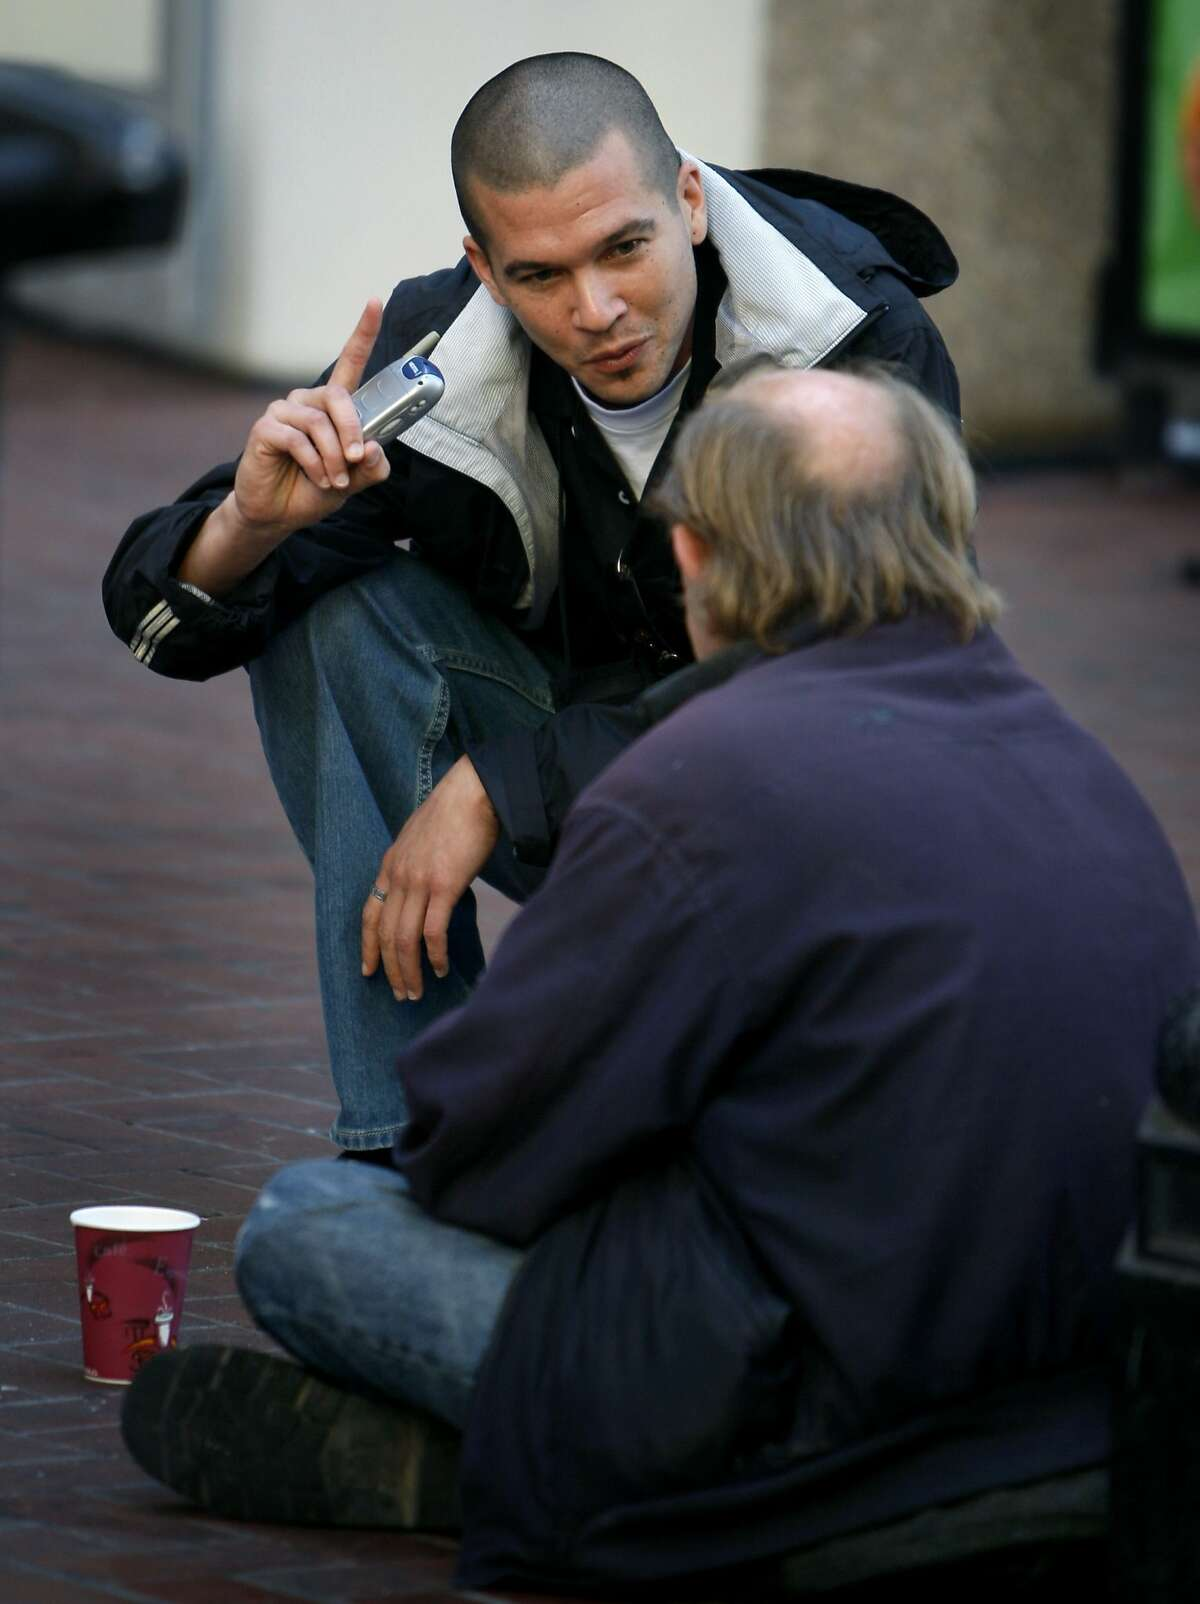 Nickolai Tamanaha, a case manager with the city's Homeless Outreach Team, makes contact with a potential client sitting on the sidewalk on Market Street corridor in San Francisco, Calif., on Friday, Sept. 19, 2008.